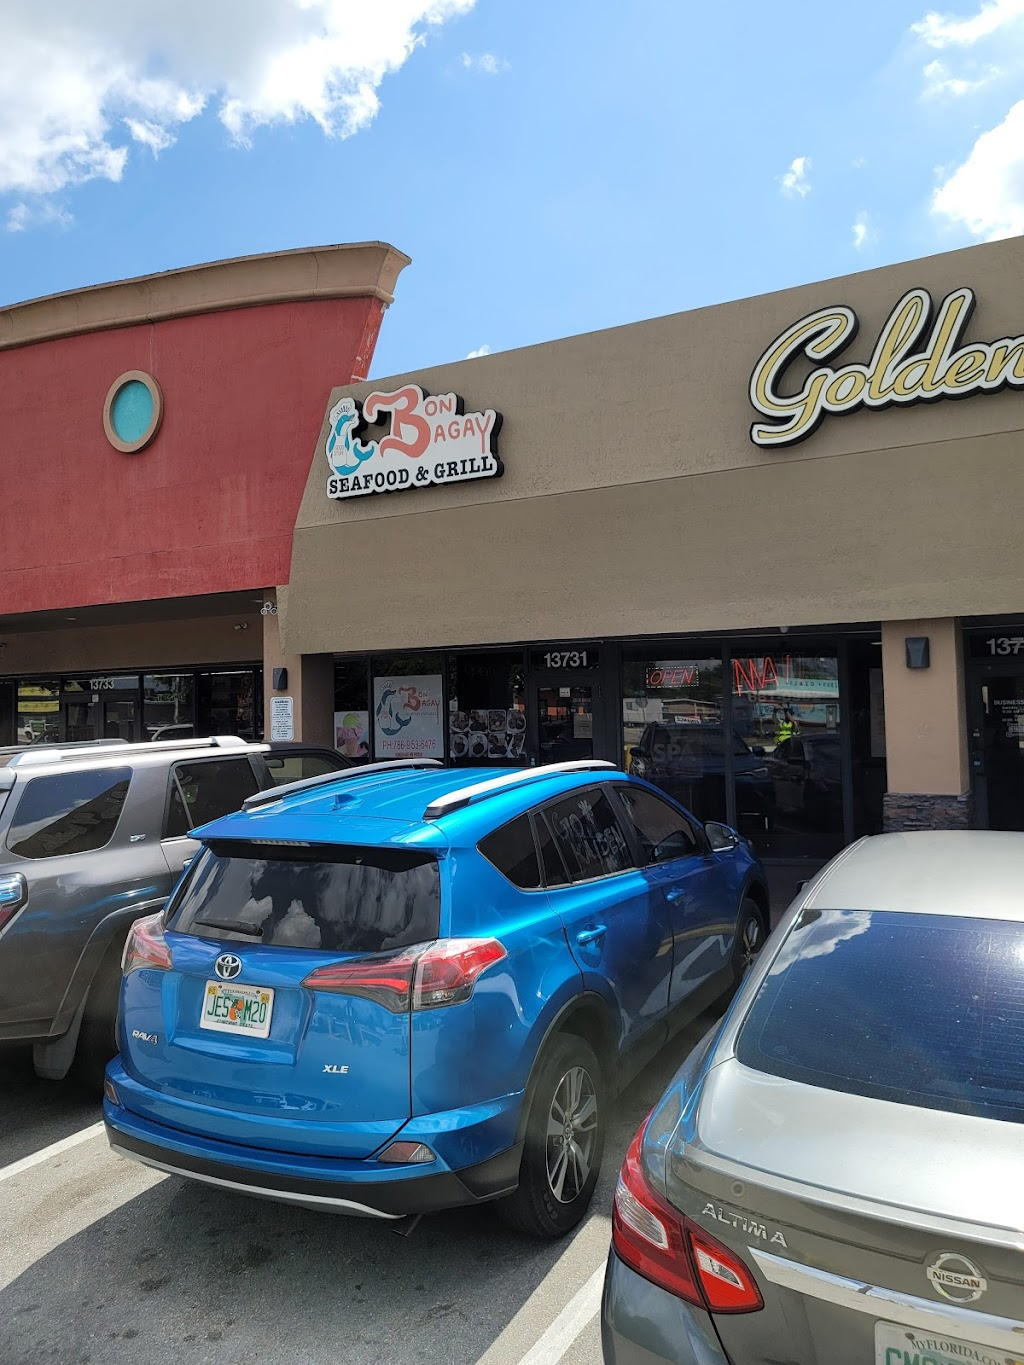 Bon Bagay Seafood & Grill | restaurant | 13731 NW 7th Ave, North Miami, FL 33168, USA | 7869536476 OR +1 786-953-6476